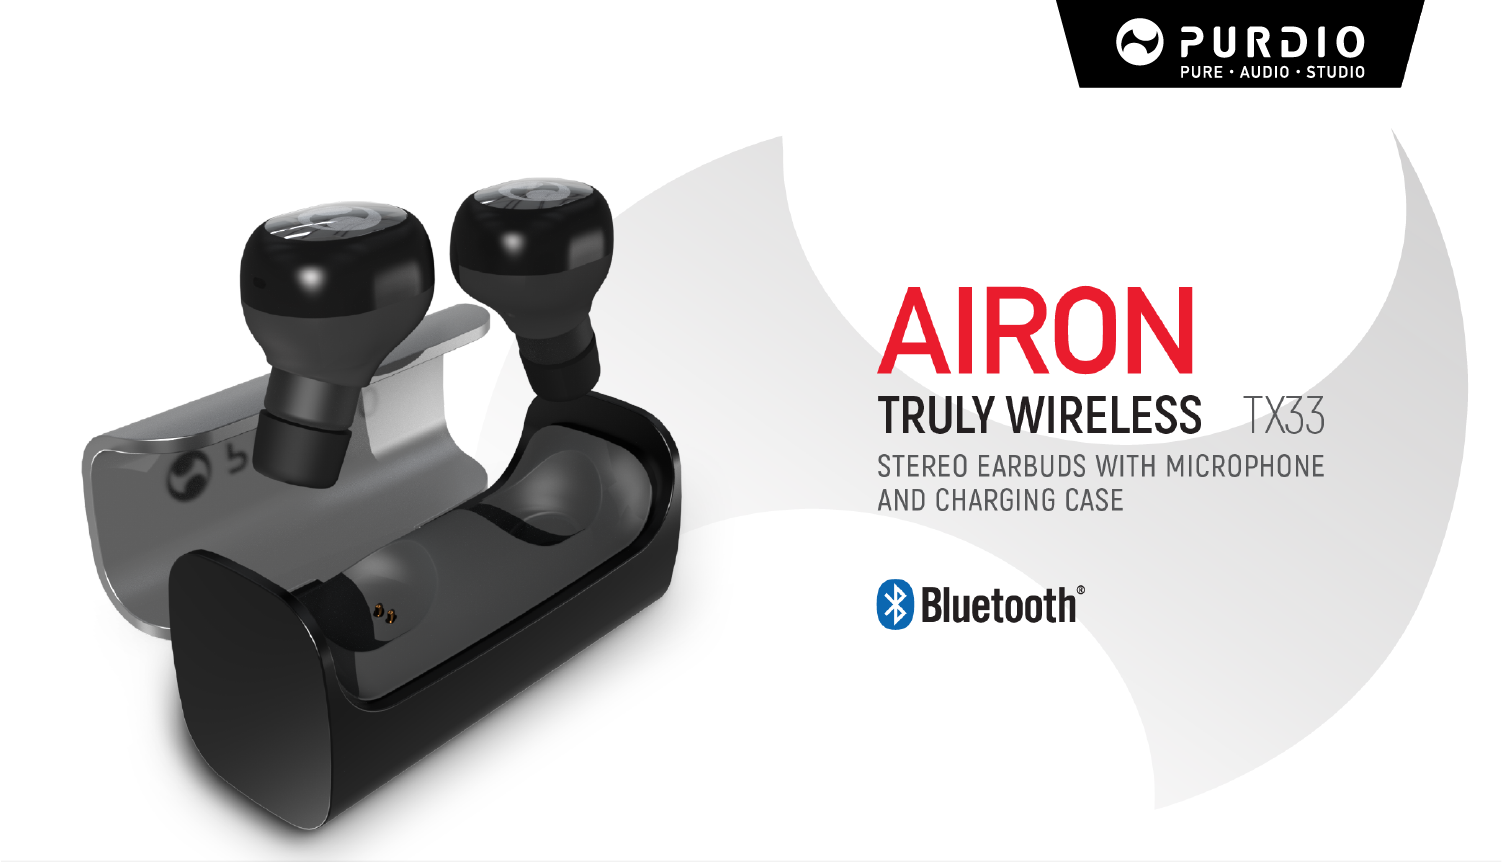 Airon is a truly wireless stereo earbuds with microphone and portable charging case, it brings a fabulous wireless stereo experience.